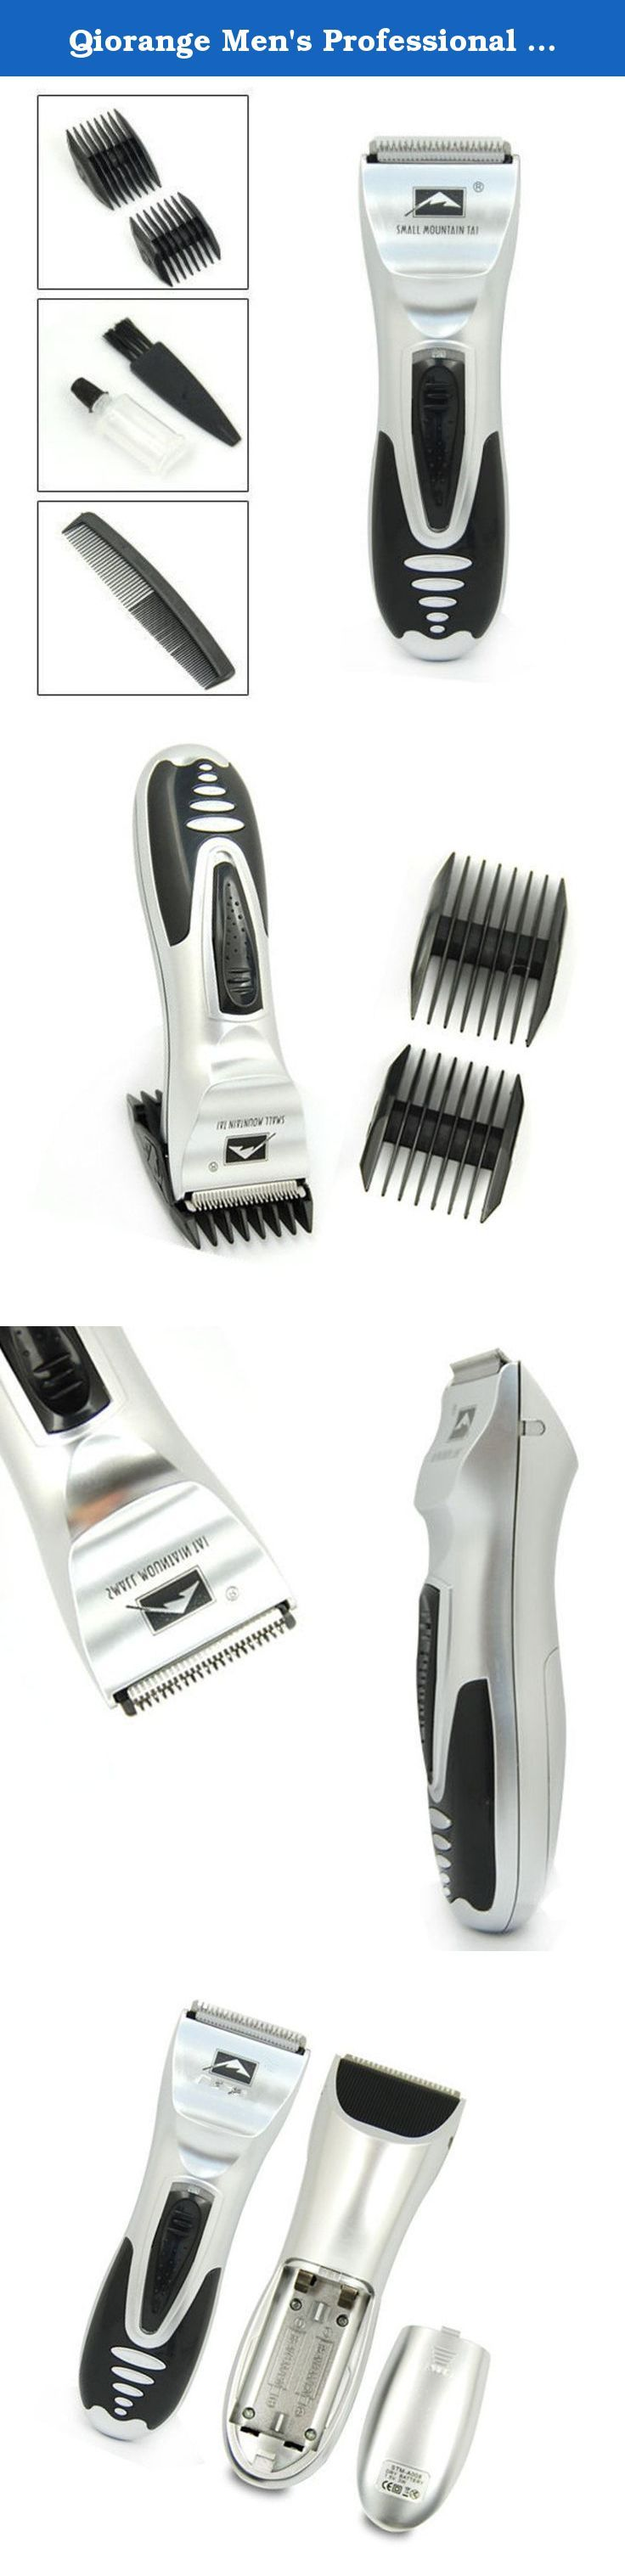 Qiorange Men's Professional Electric Shaver Razor Beard Hair Clipper Trimmer Grooming. Features: Electric hair trimmer helps you fix hair and sideburns fast at different length of 3mm, 6mm, 9mm or 12mm. Hope it let you become more handsome! 100% brand new, high quality Powered by 2×AAA batteries (batteries are not included) Good quality thin metal net slice and strength, the inner blades offer quieter shave and reduced vibration. The adjustable clipping comb is applicable for clipping…